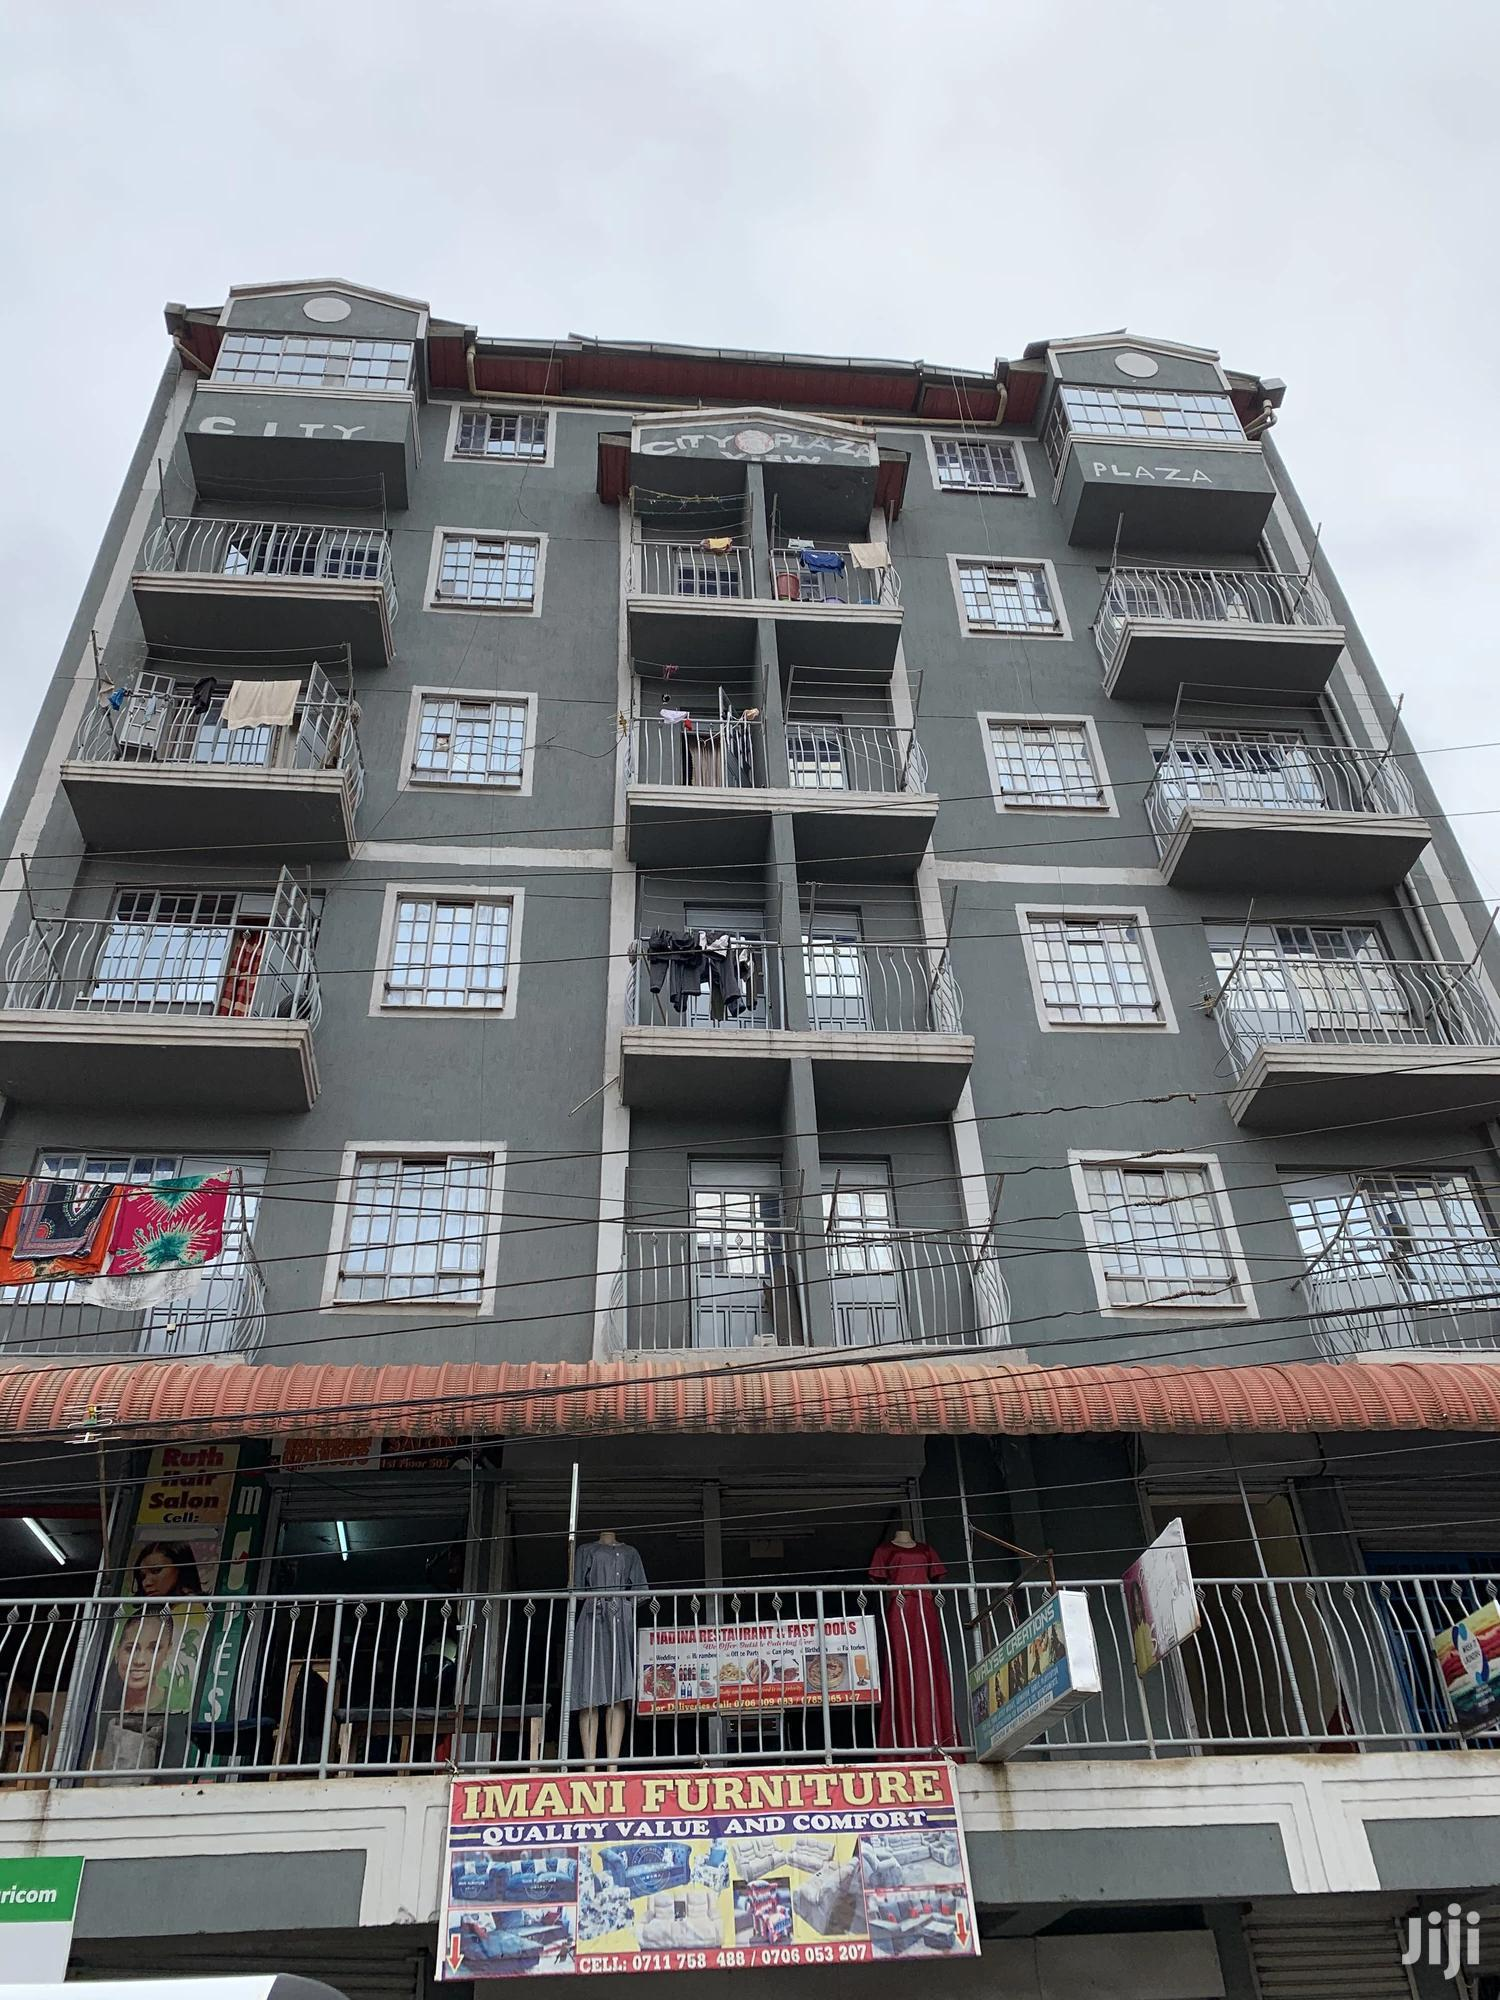 Bedsitter Apartments In Ngara Next To Equity Bank For Rent